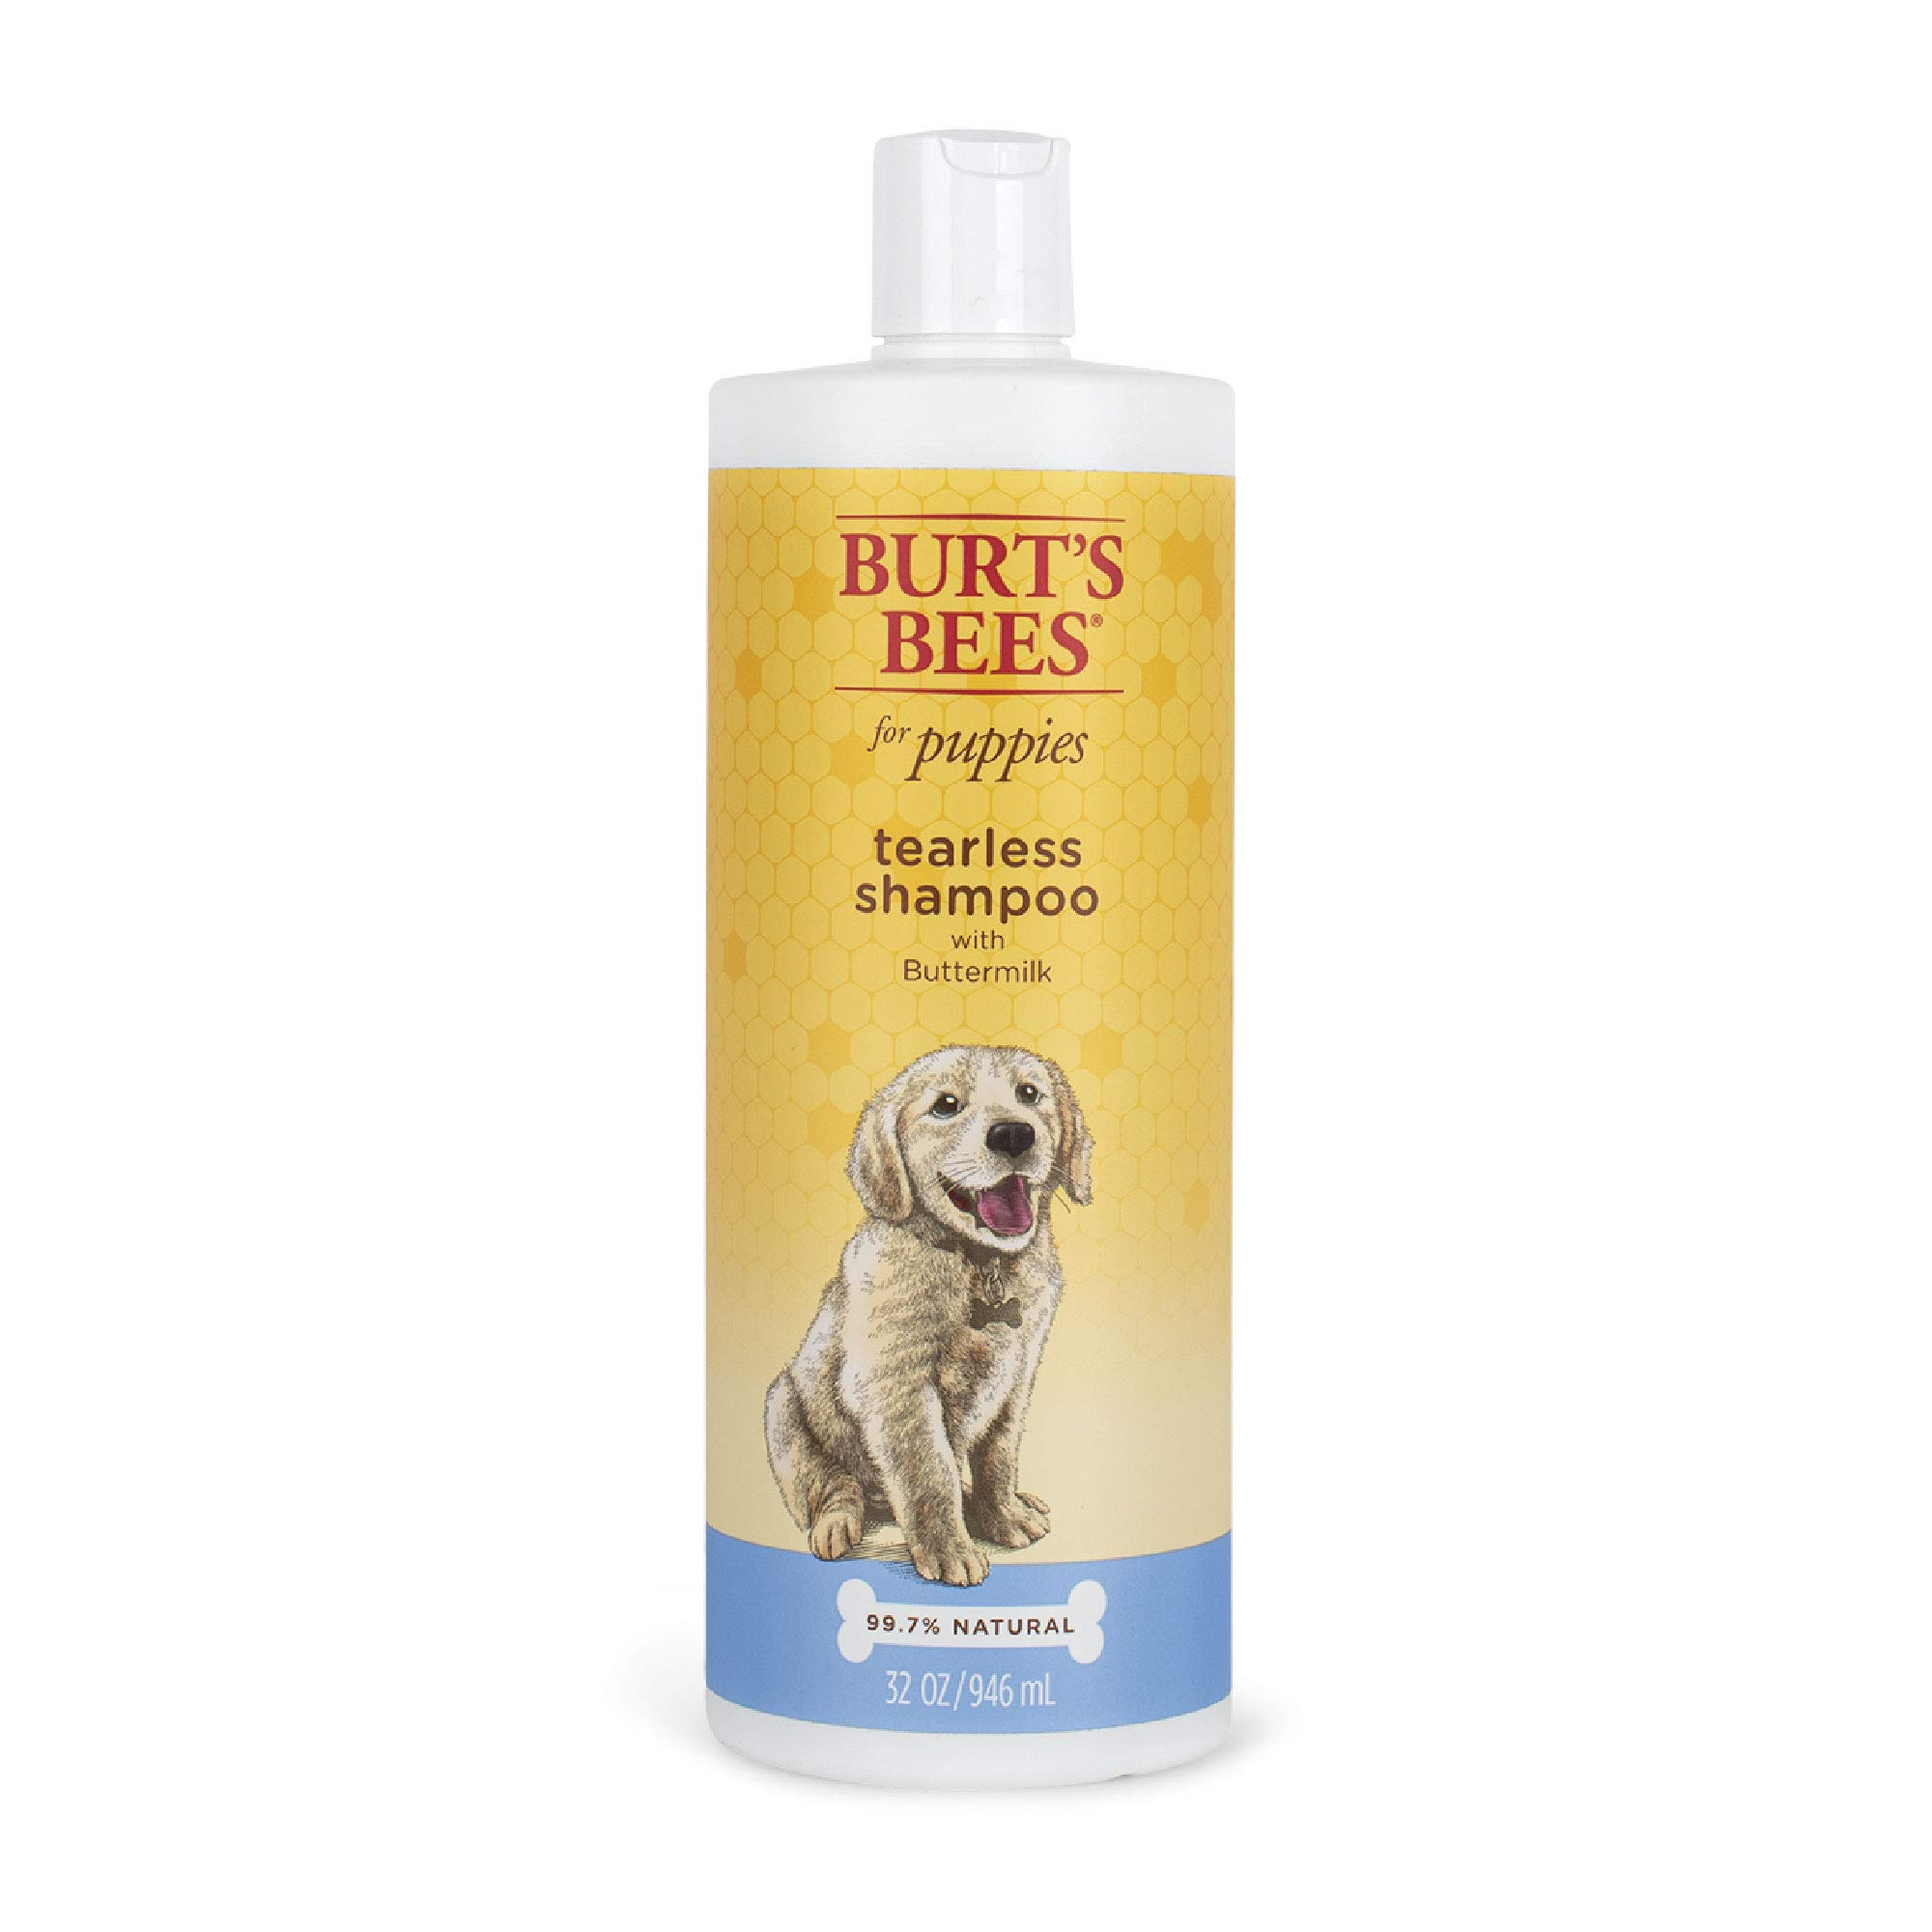 Burt's Bees for Dogs Natural Tearless Puppy Shampoo with Buttermilk | Dog and Puppy Shampoo for Gentle Fur, 32 Ounces | Cruelty Free, Sulfate & Paraben Free, pH Balanced for Dogs - Made in The USA